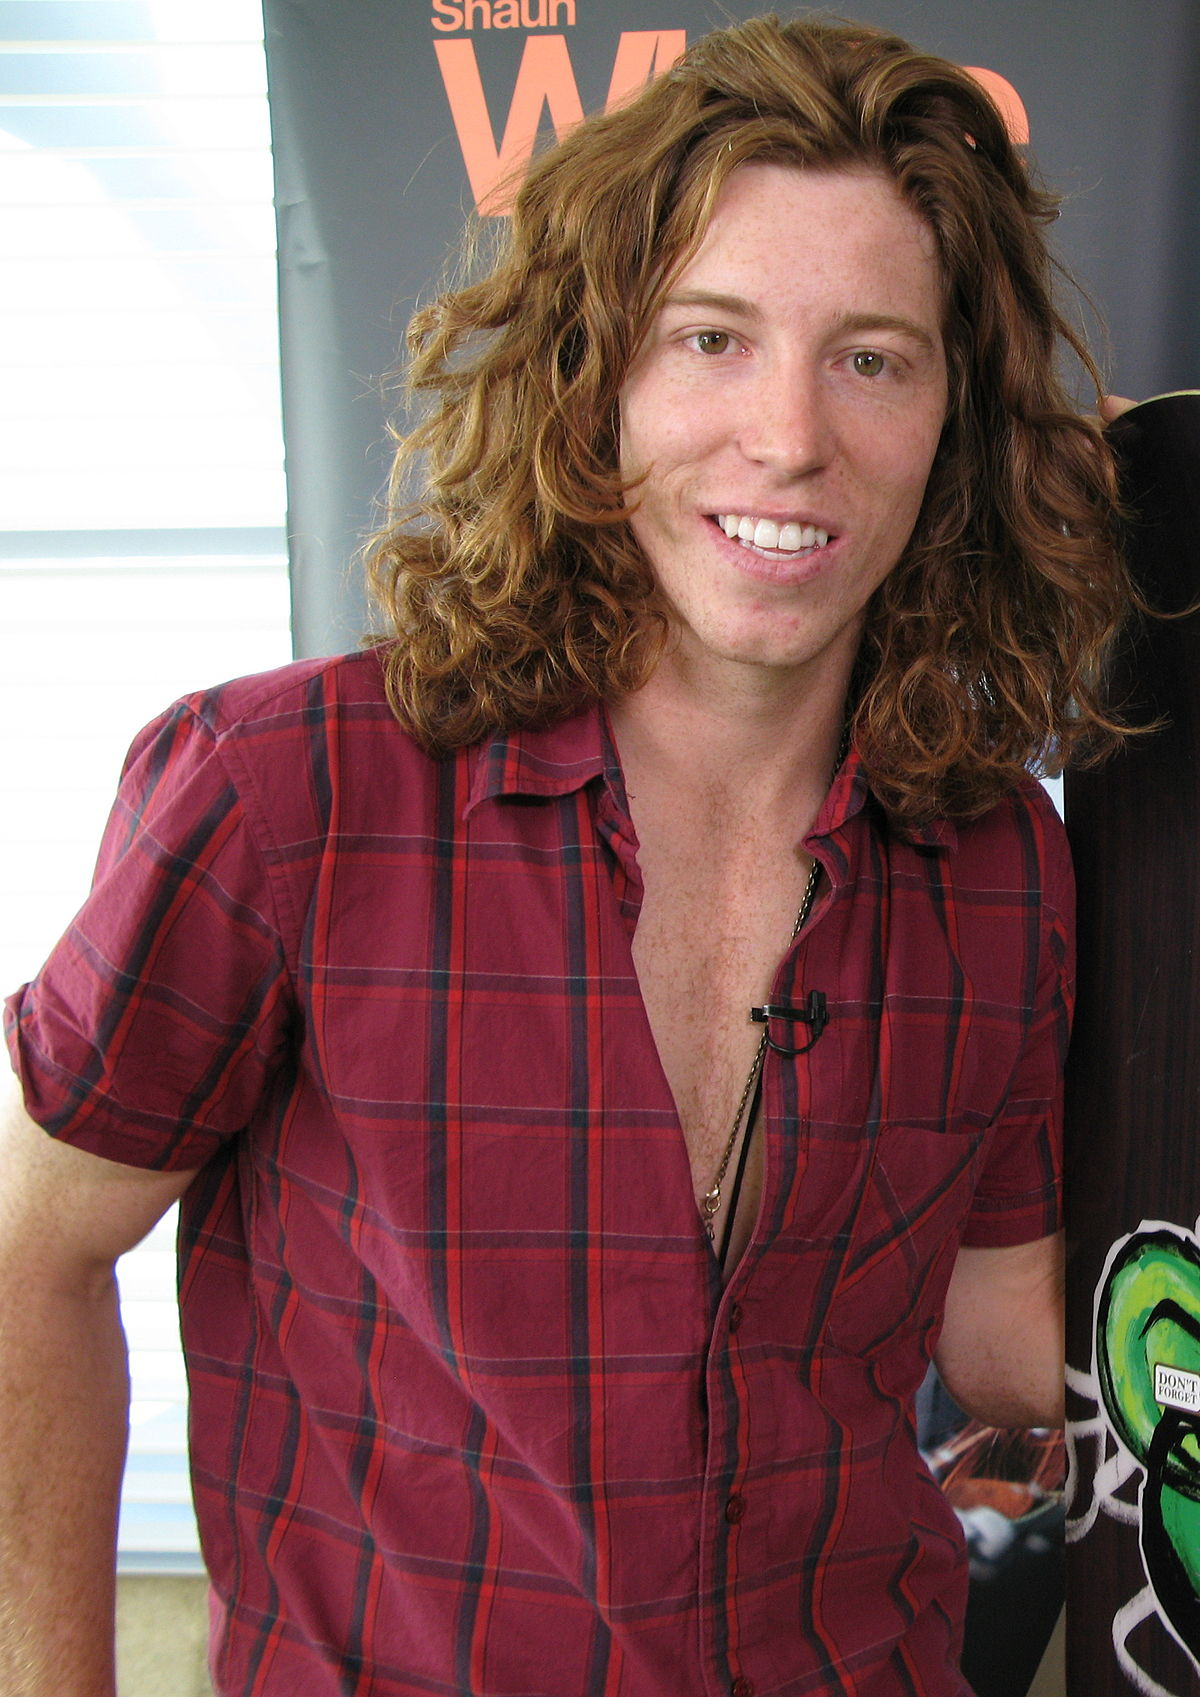 from Omar shaun white gay snowboarder